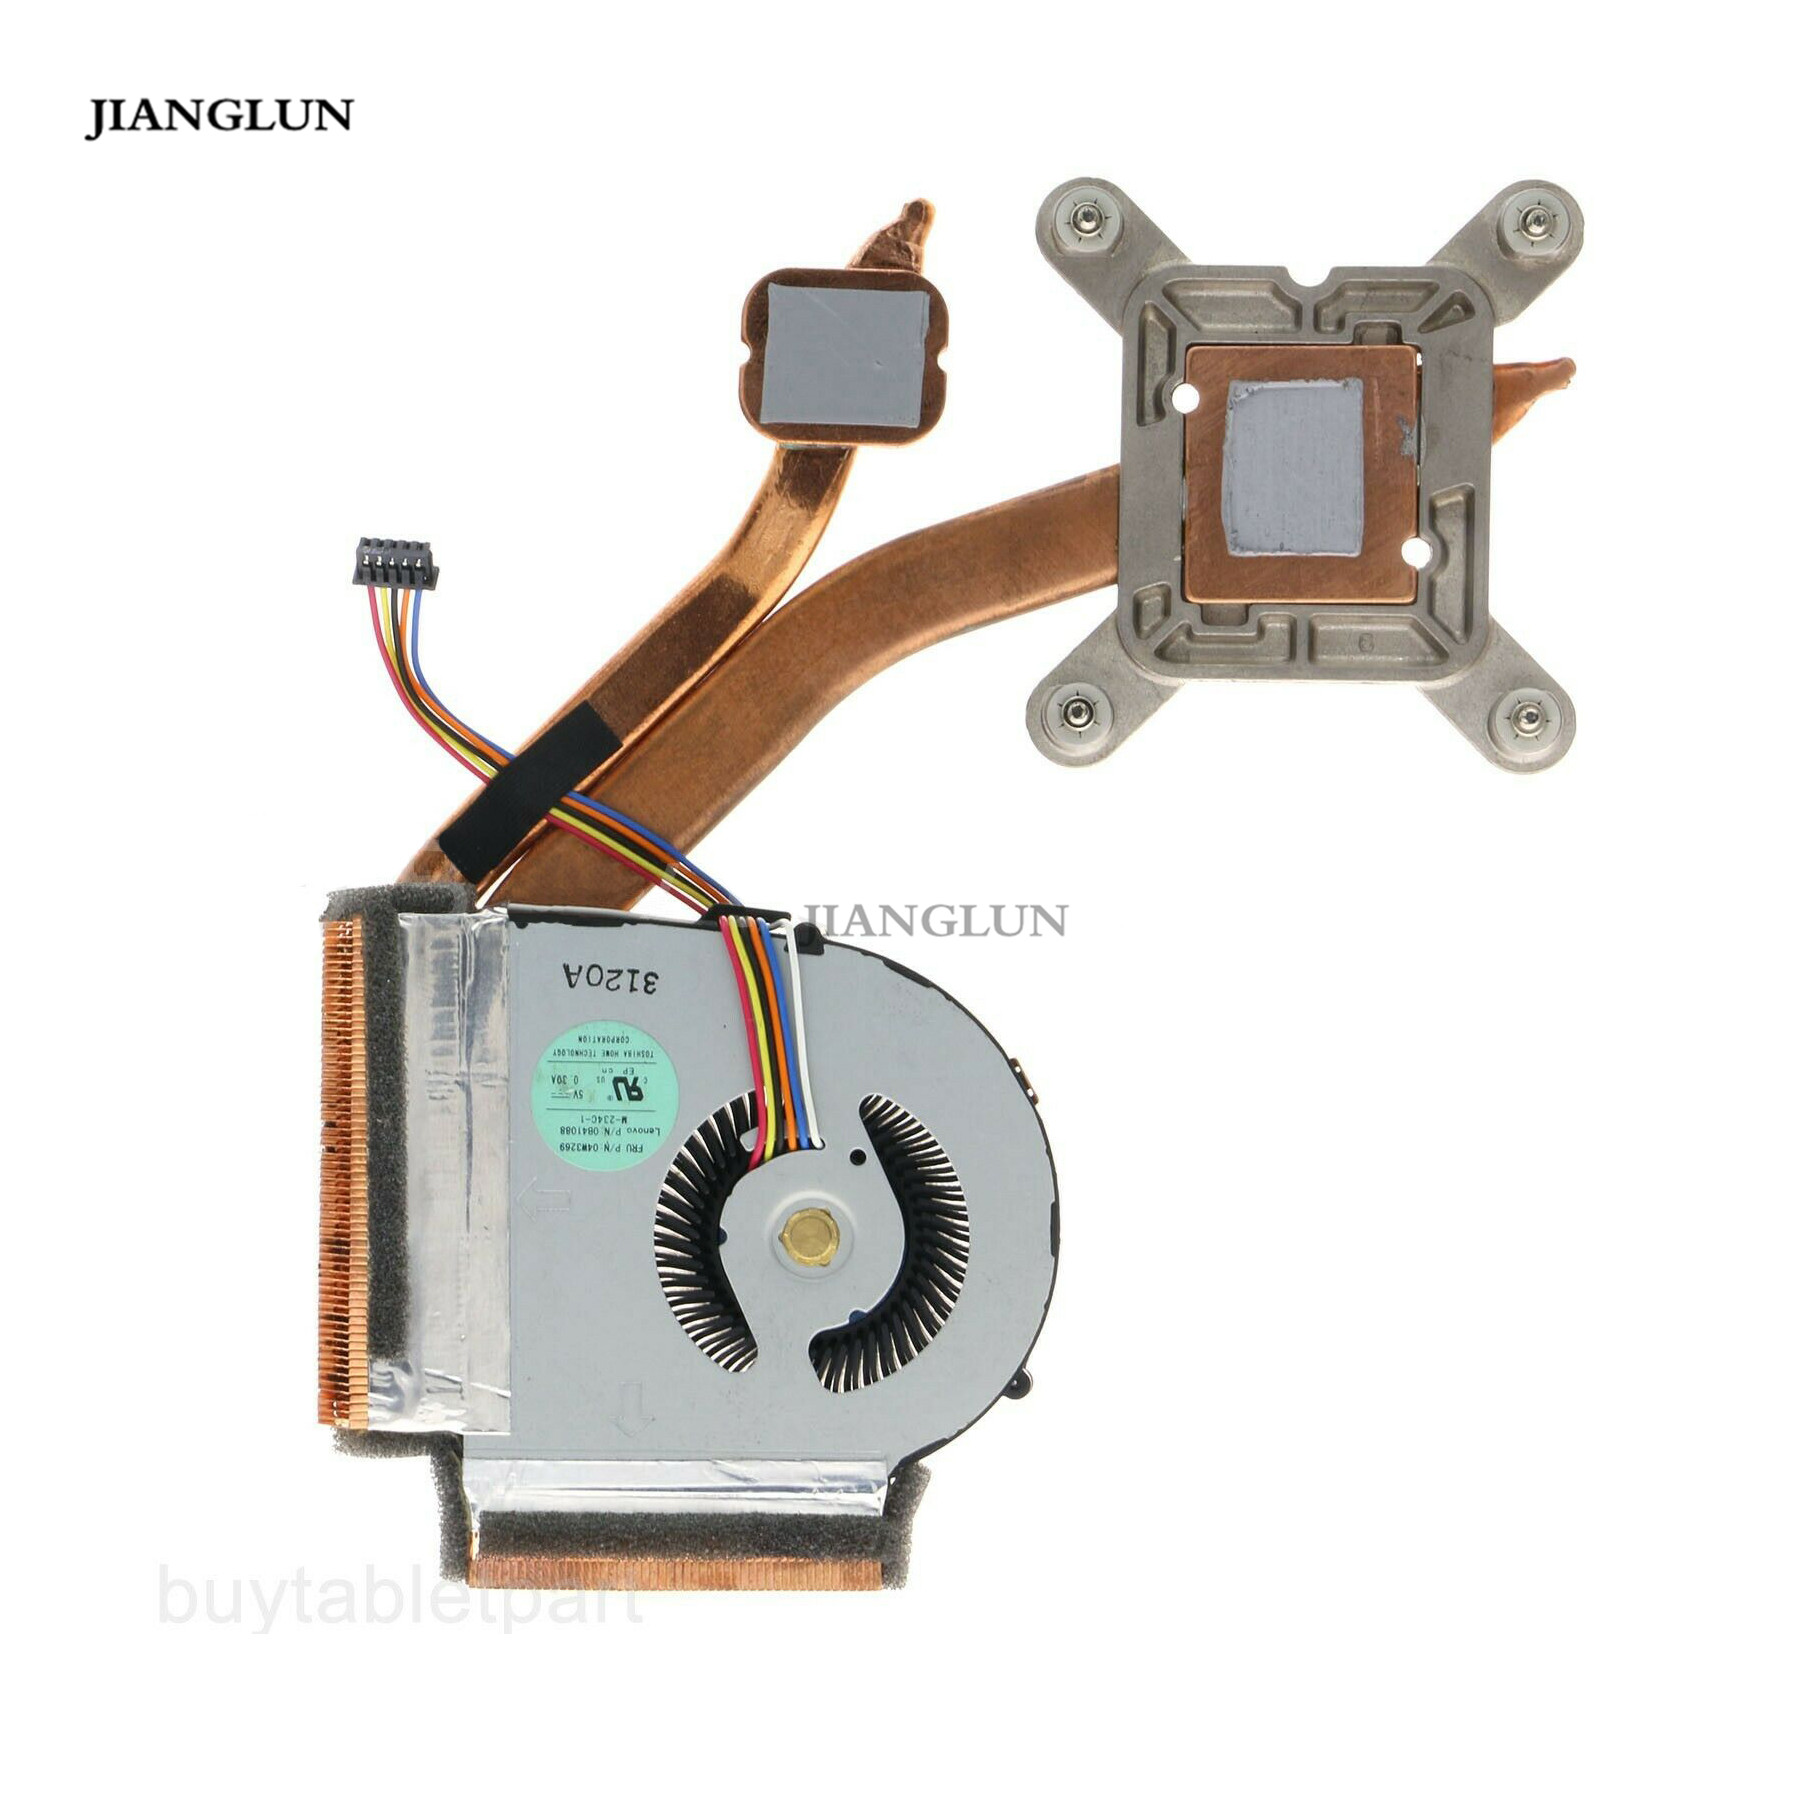 JIANGLUN Laptop CPU Cooling <font><b>Fan</b></font> with Heatsink For <font><b>Lenovo</b></font> IBM ThinkPad <font><b>T430</b></font> T430i image